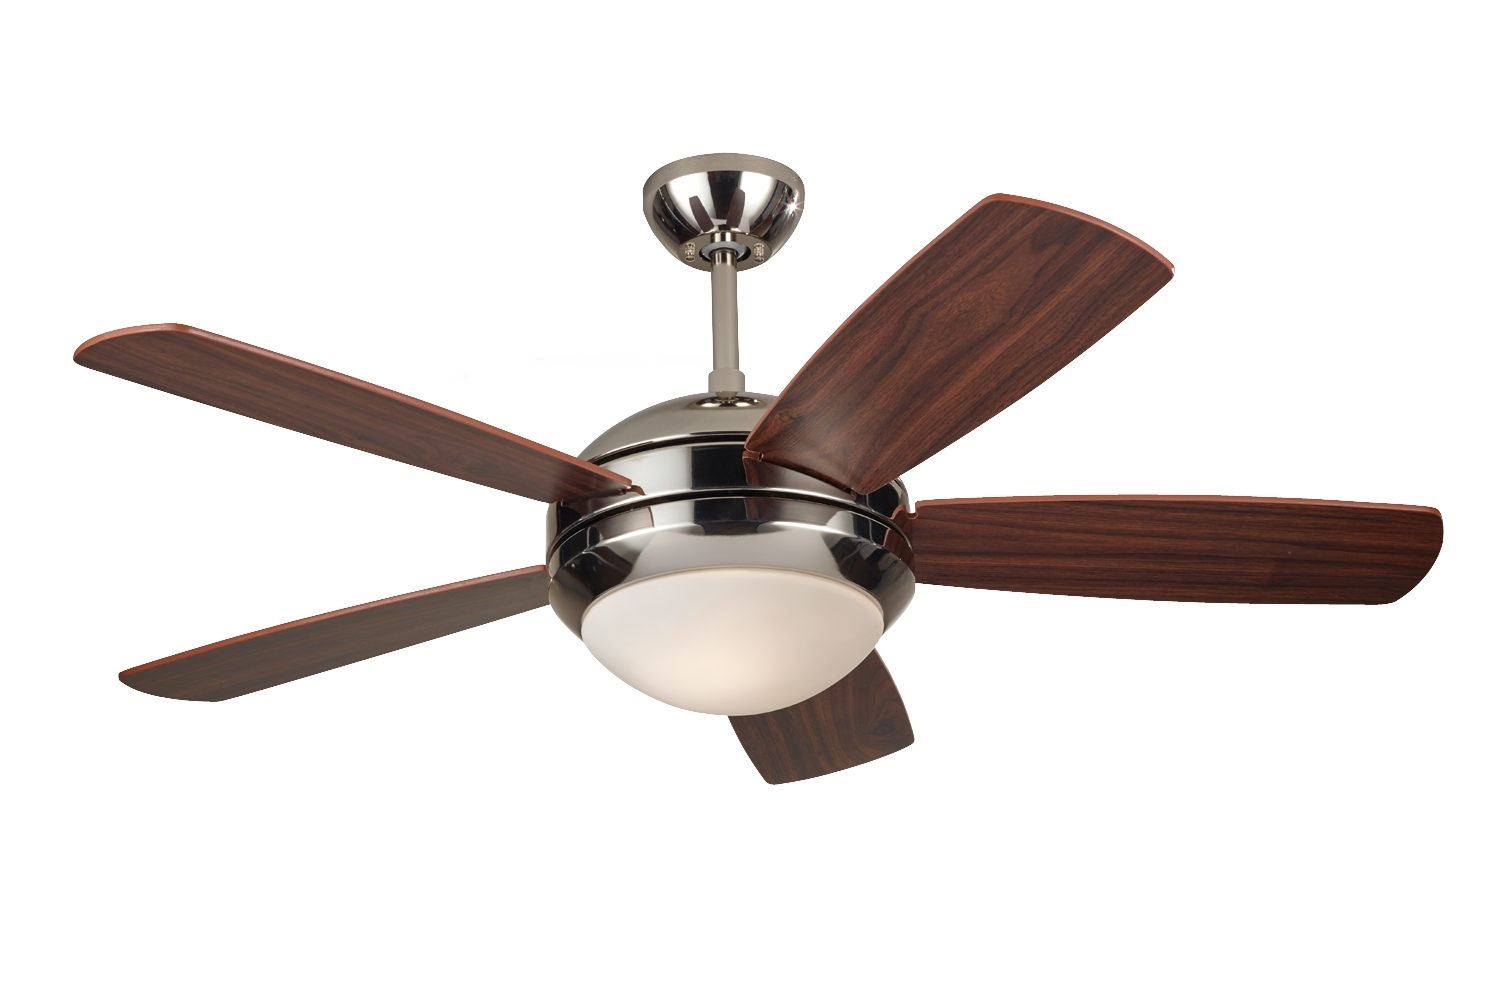 44 inch Ceiling Fan from the Discus II collection by Monte Carlo 5DI44PND